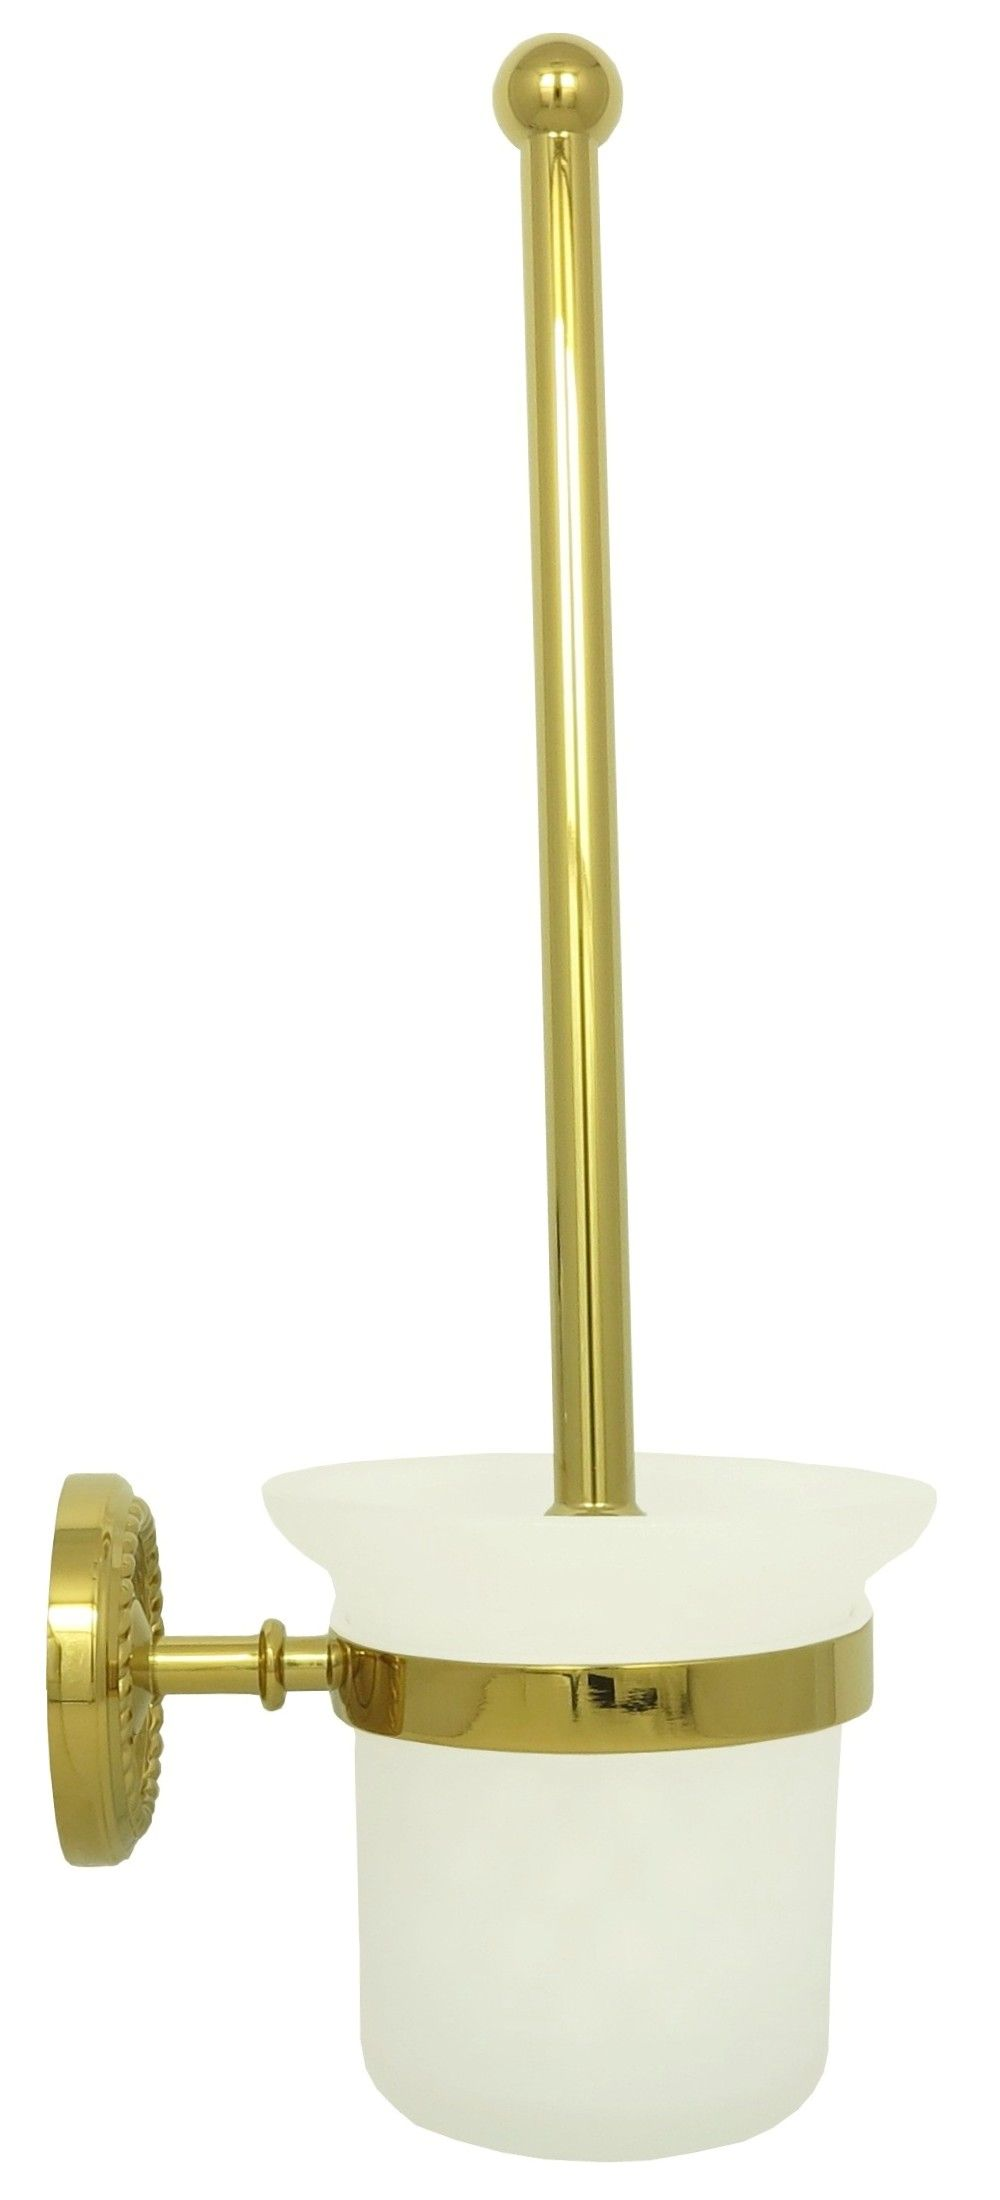 brush set toilet brush toilet brush set wc bracket brush retro gold ebay. Black Bedroom Furniture Sets. Home Design Ideas